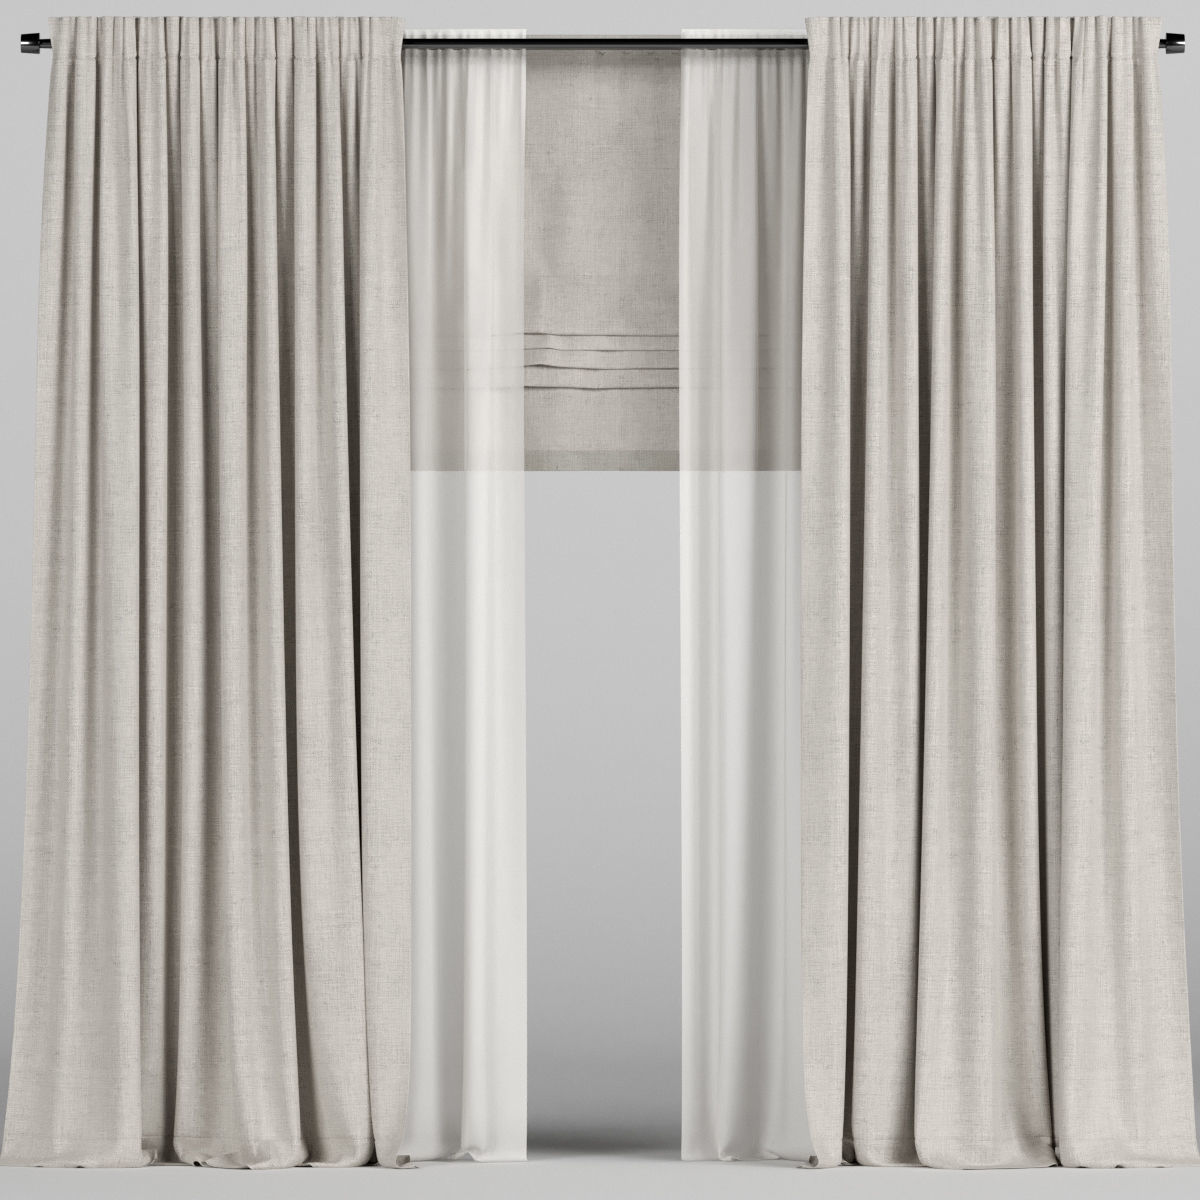 Beige curtains with tulle and roman blinds